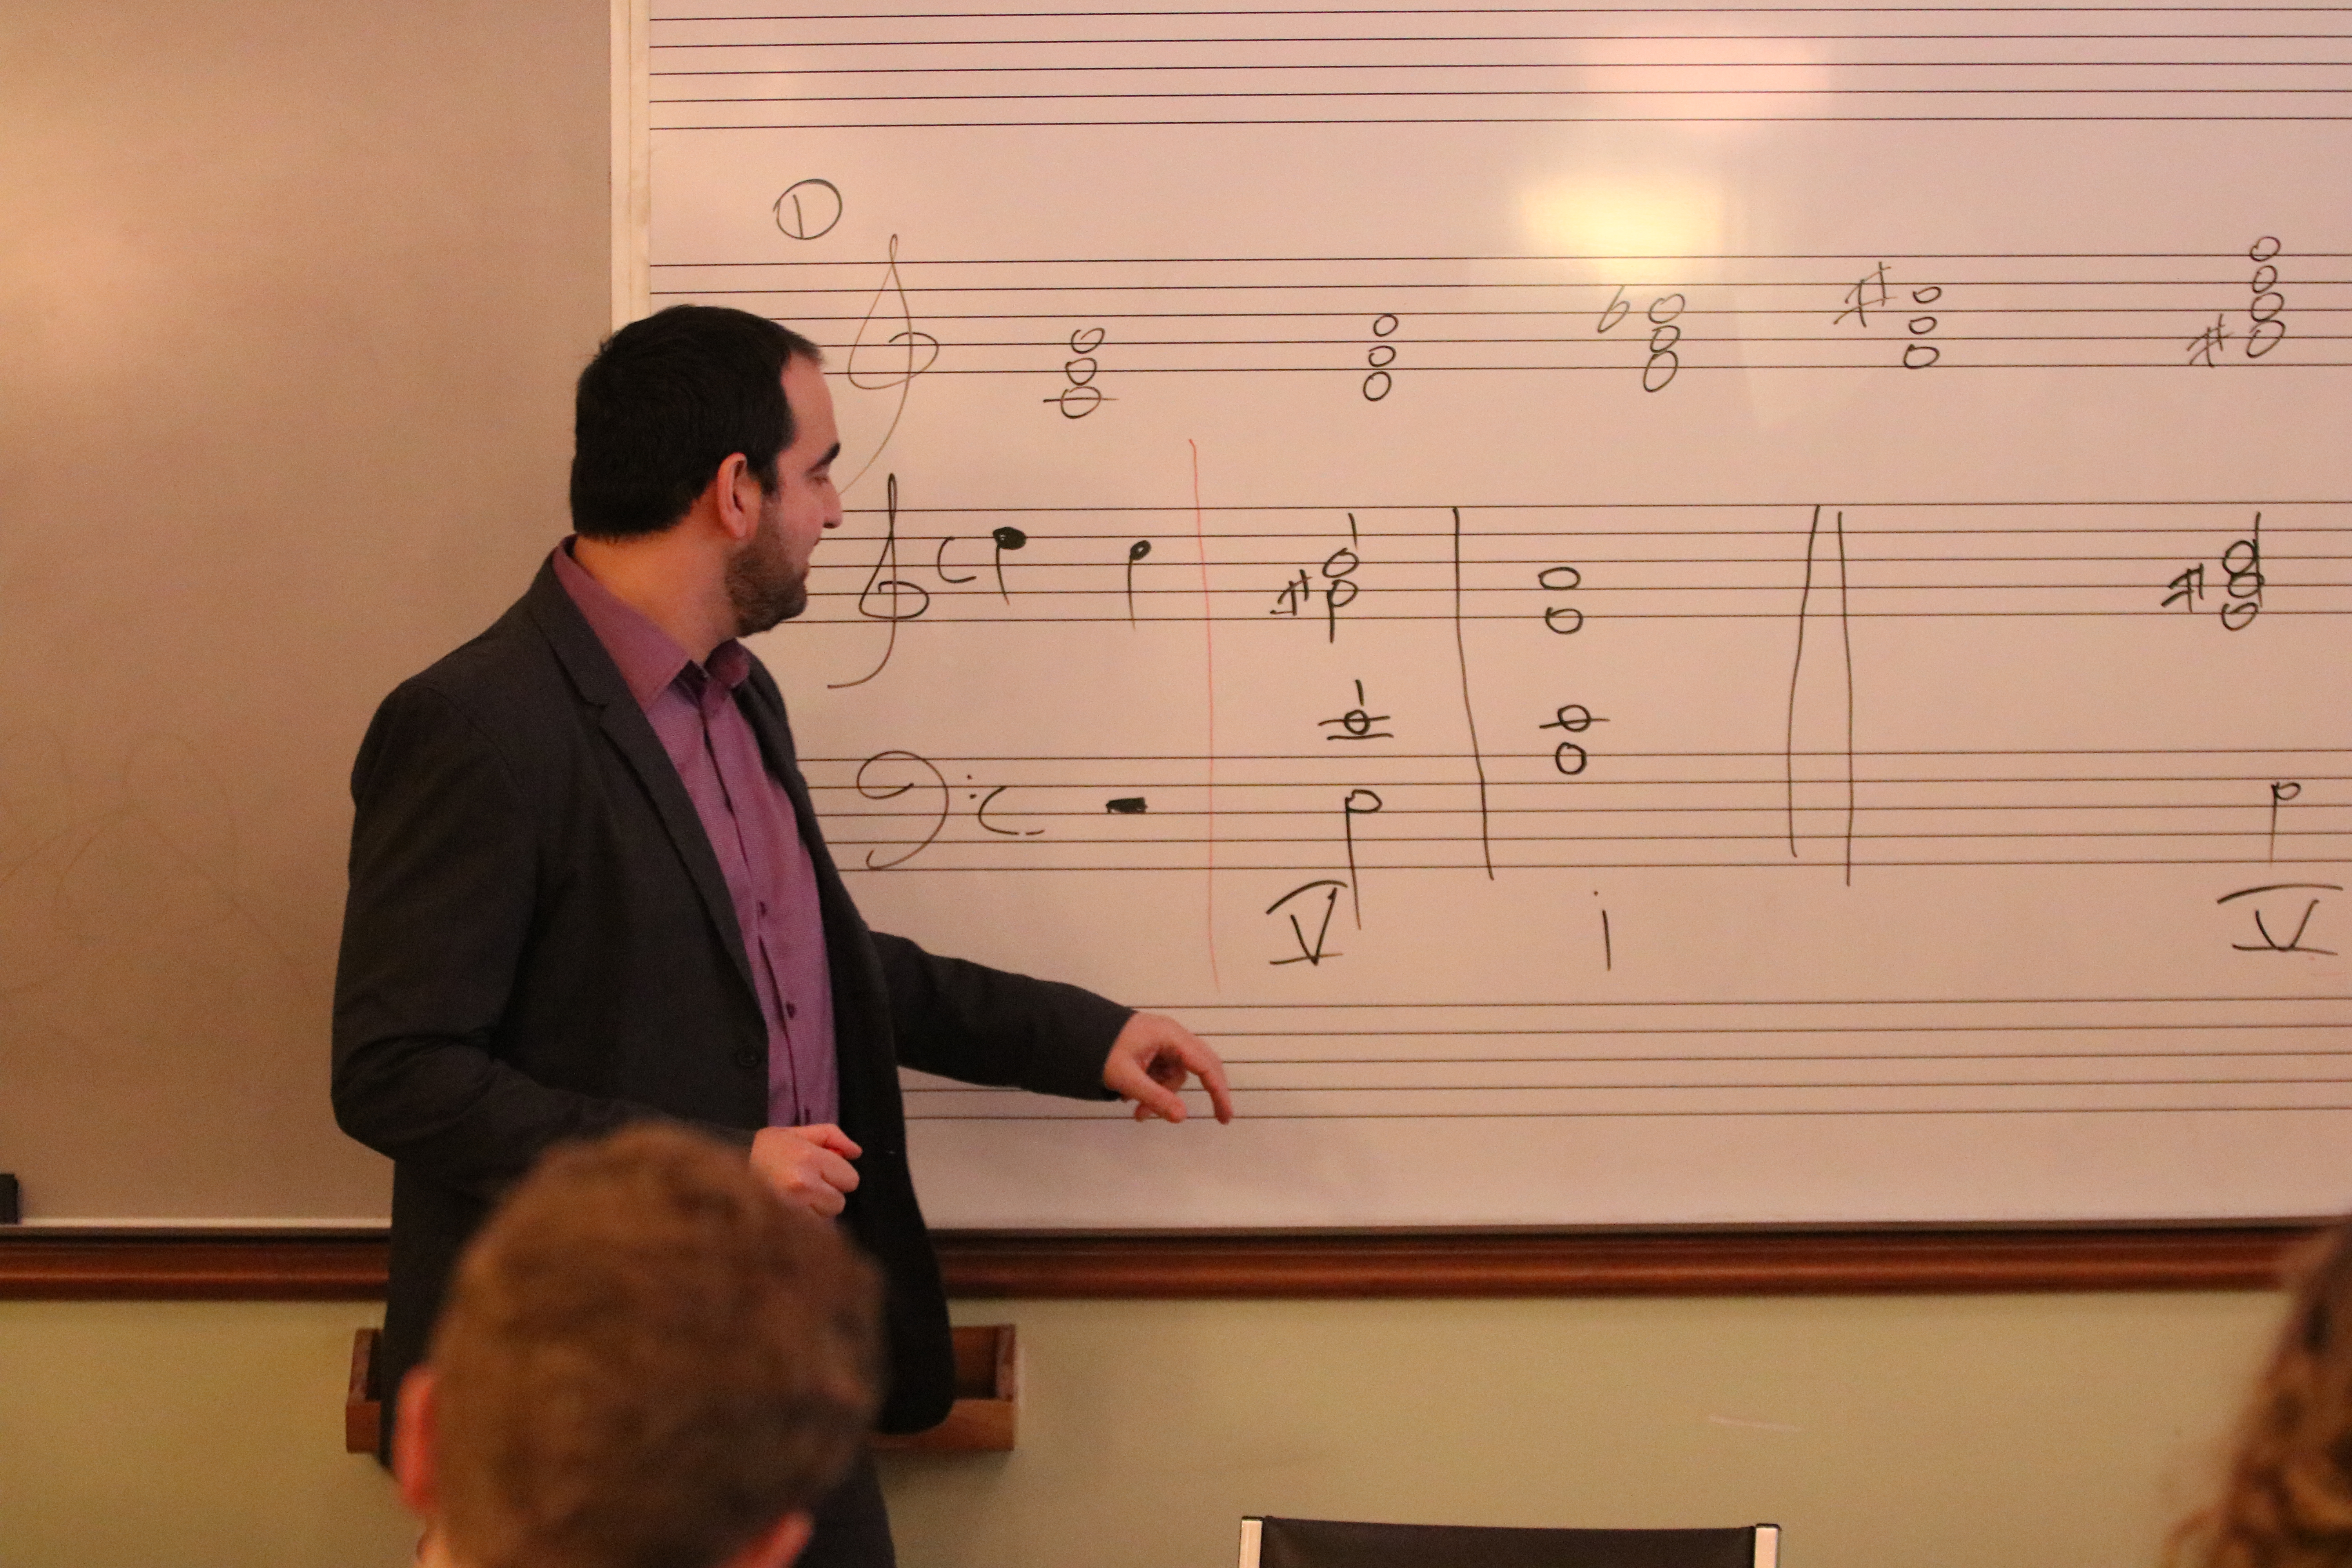 Dr. Michalis Andronikou inspiring young musicians by example Image